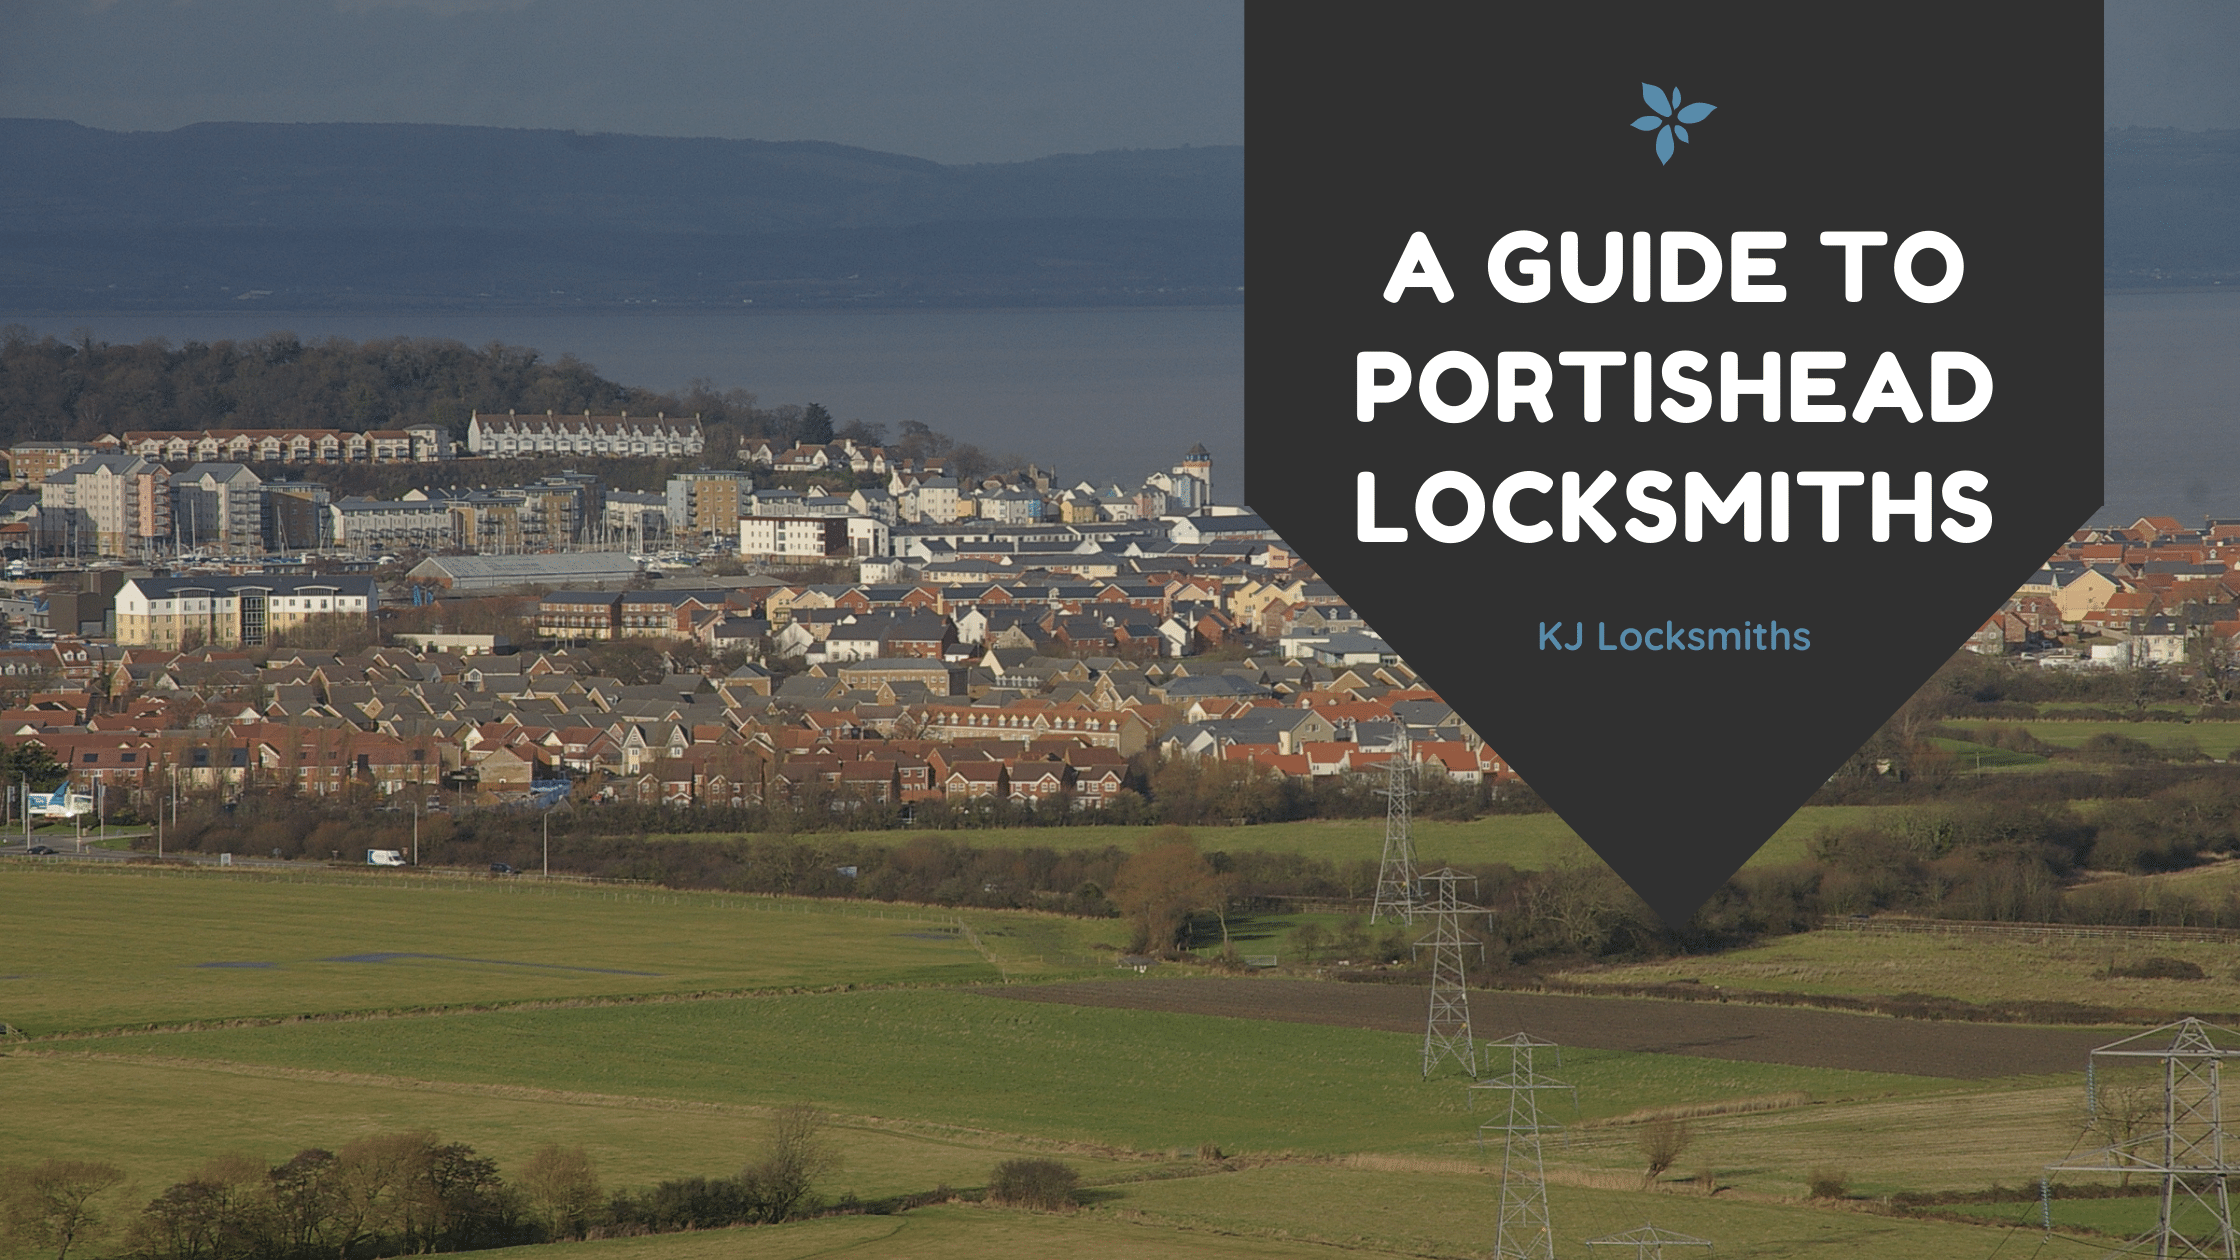 A Guide to Portishead Locksmiths